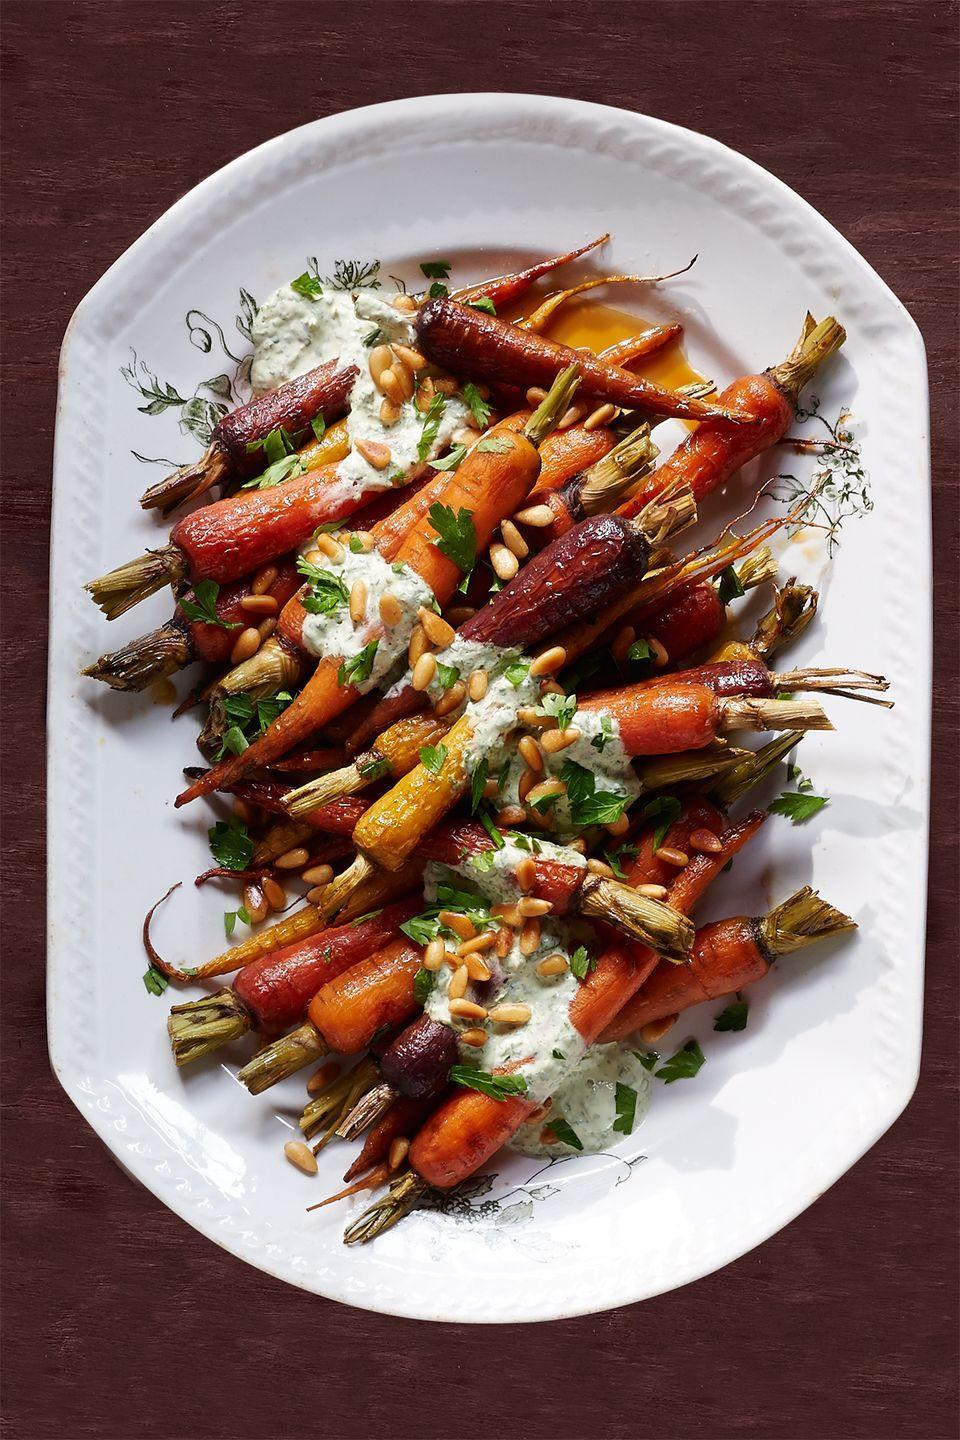 """<p>Brighten up your Thanksgiving table with these light and tangy carrots.</p><p><strong><a href=""""https://www.countryliving.com/food-drinks/recipes/a36647/orange-carrots-yogurt-parsley-dressing/"""" rel=""""nofollow noopener"""" target=""""_blank"""" data-ylk=""""slk:Get the recipe"""" class=""""link rapid-noclick-resp"""">Get the recipe</a>.</strong></p>"""